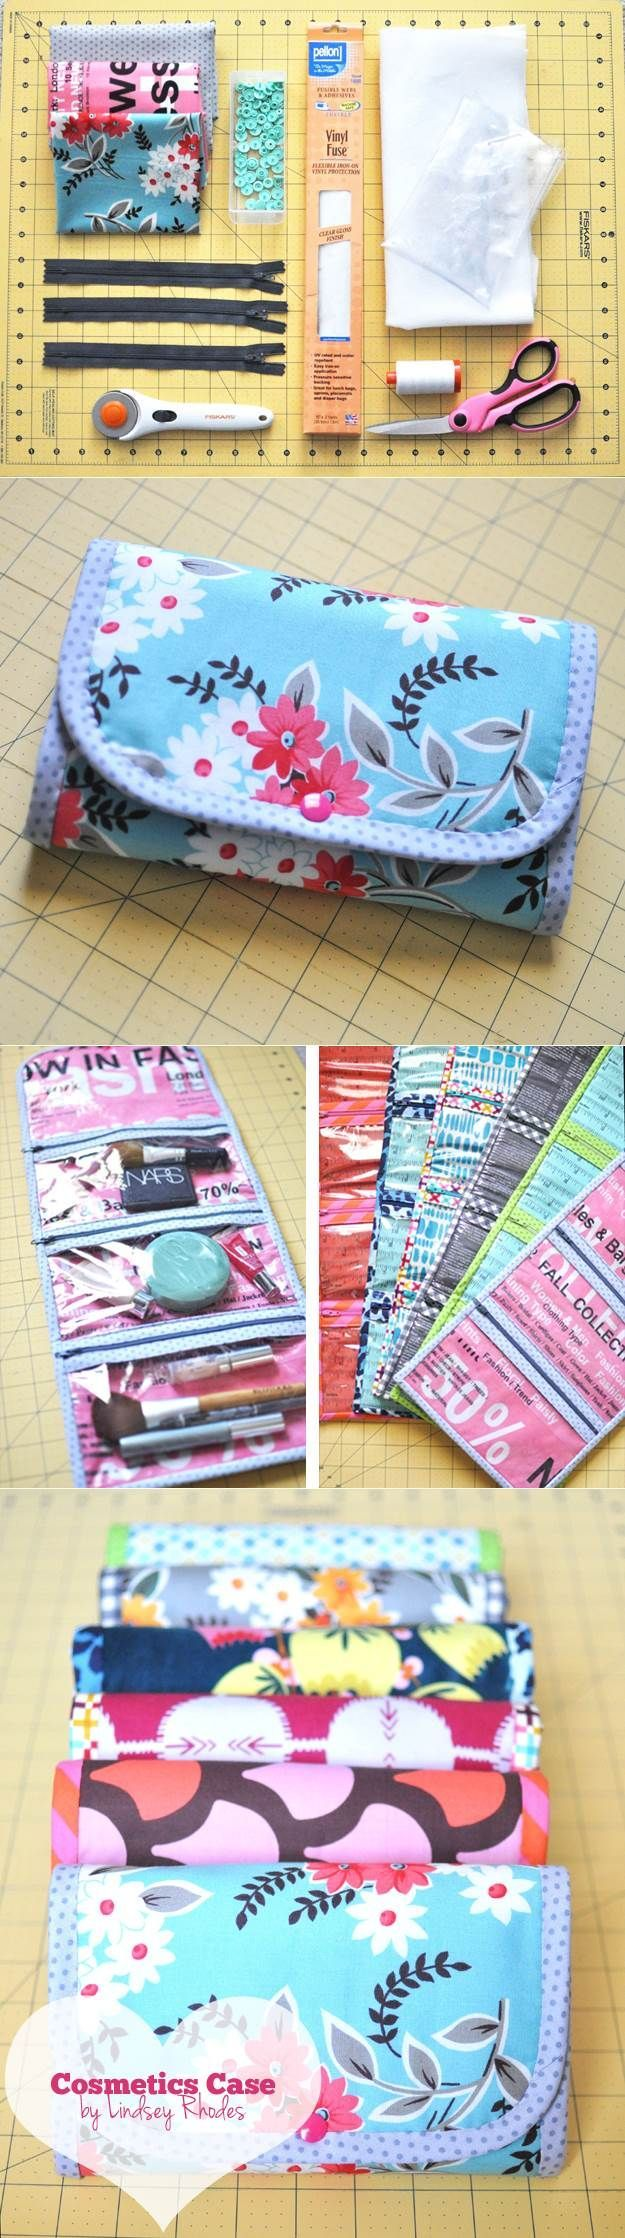 Small cosmetic bag | DIY Stuff